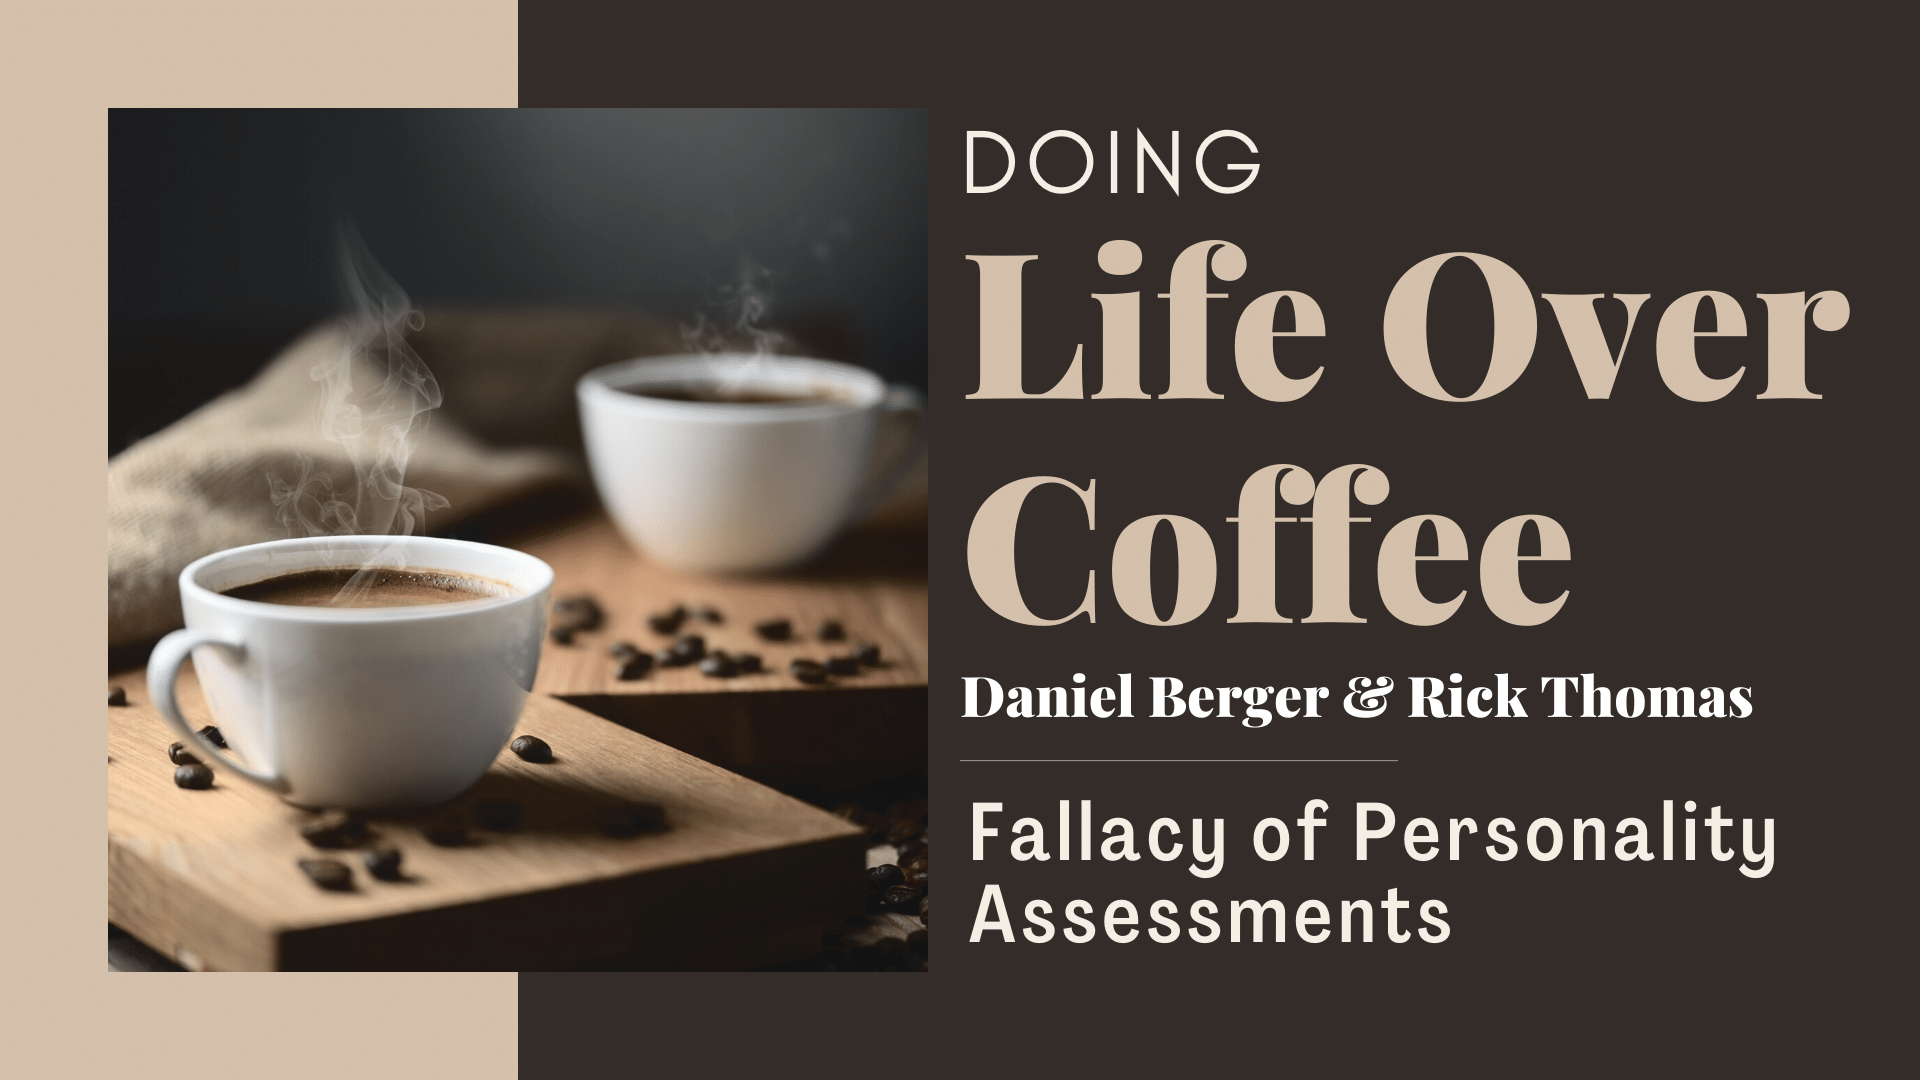 The Fallacy of Personality Assessments